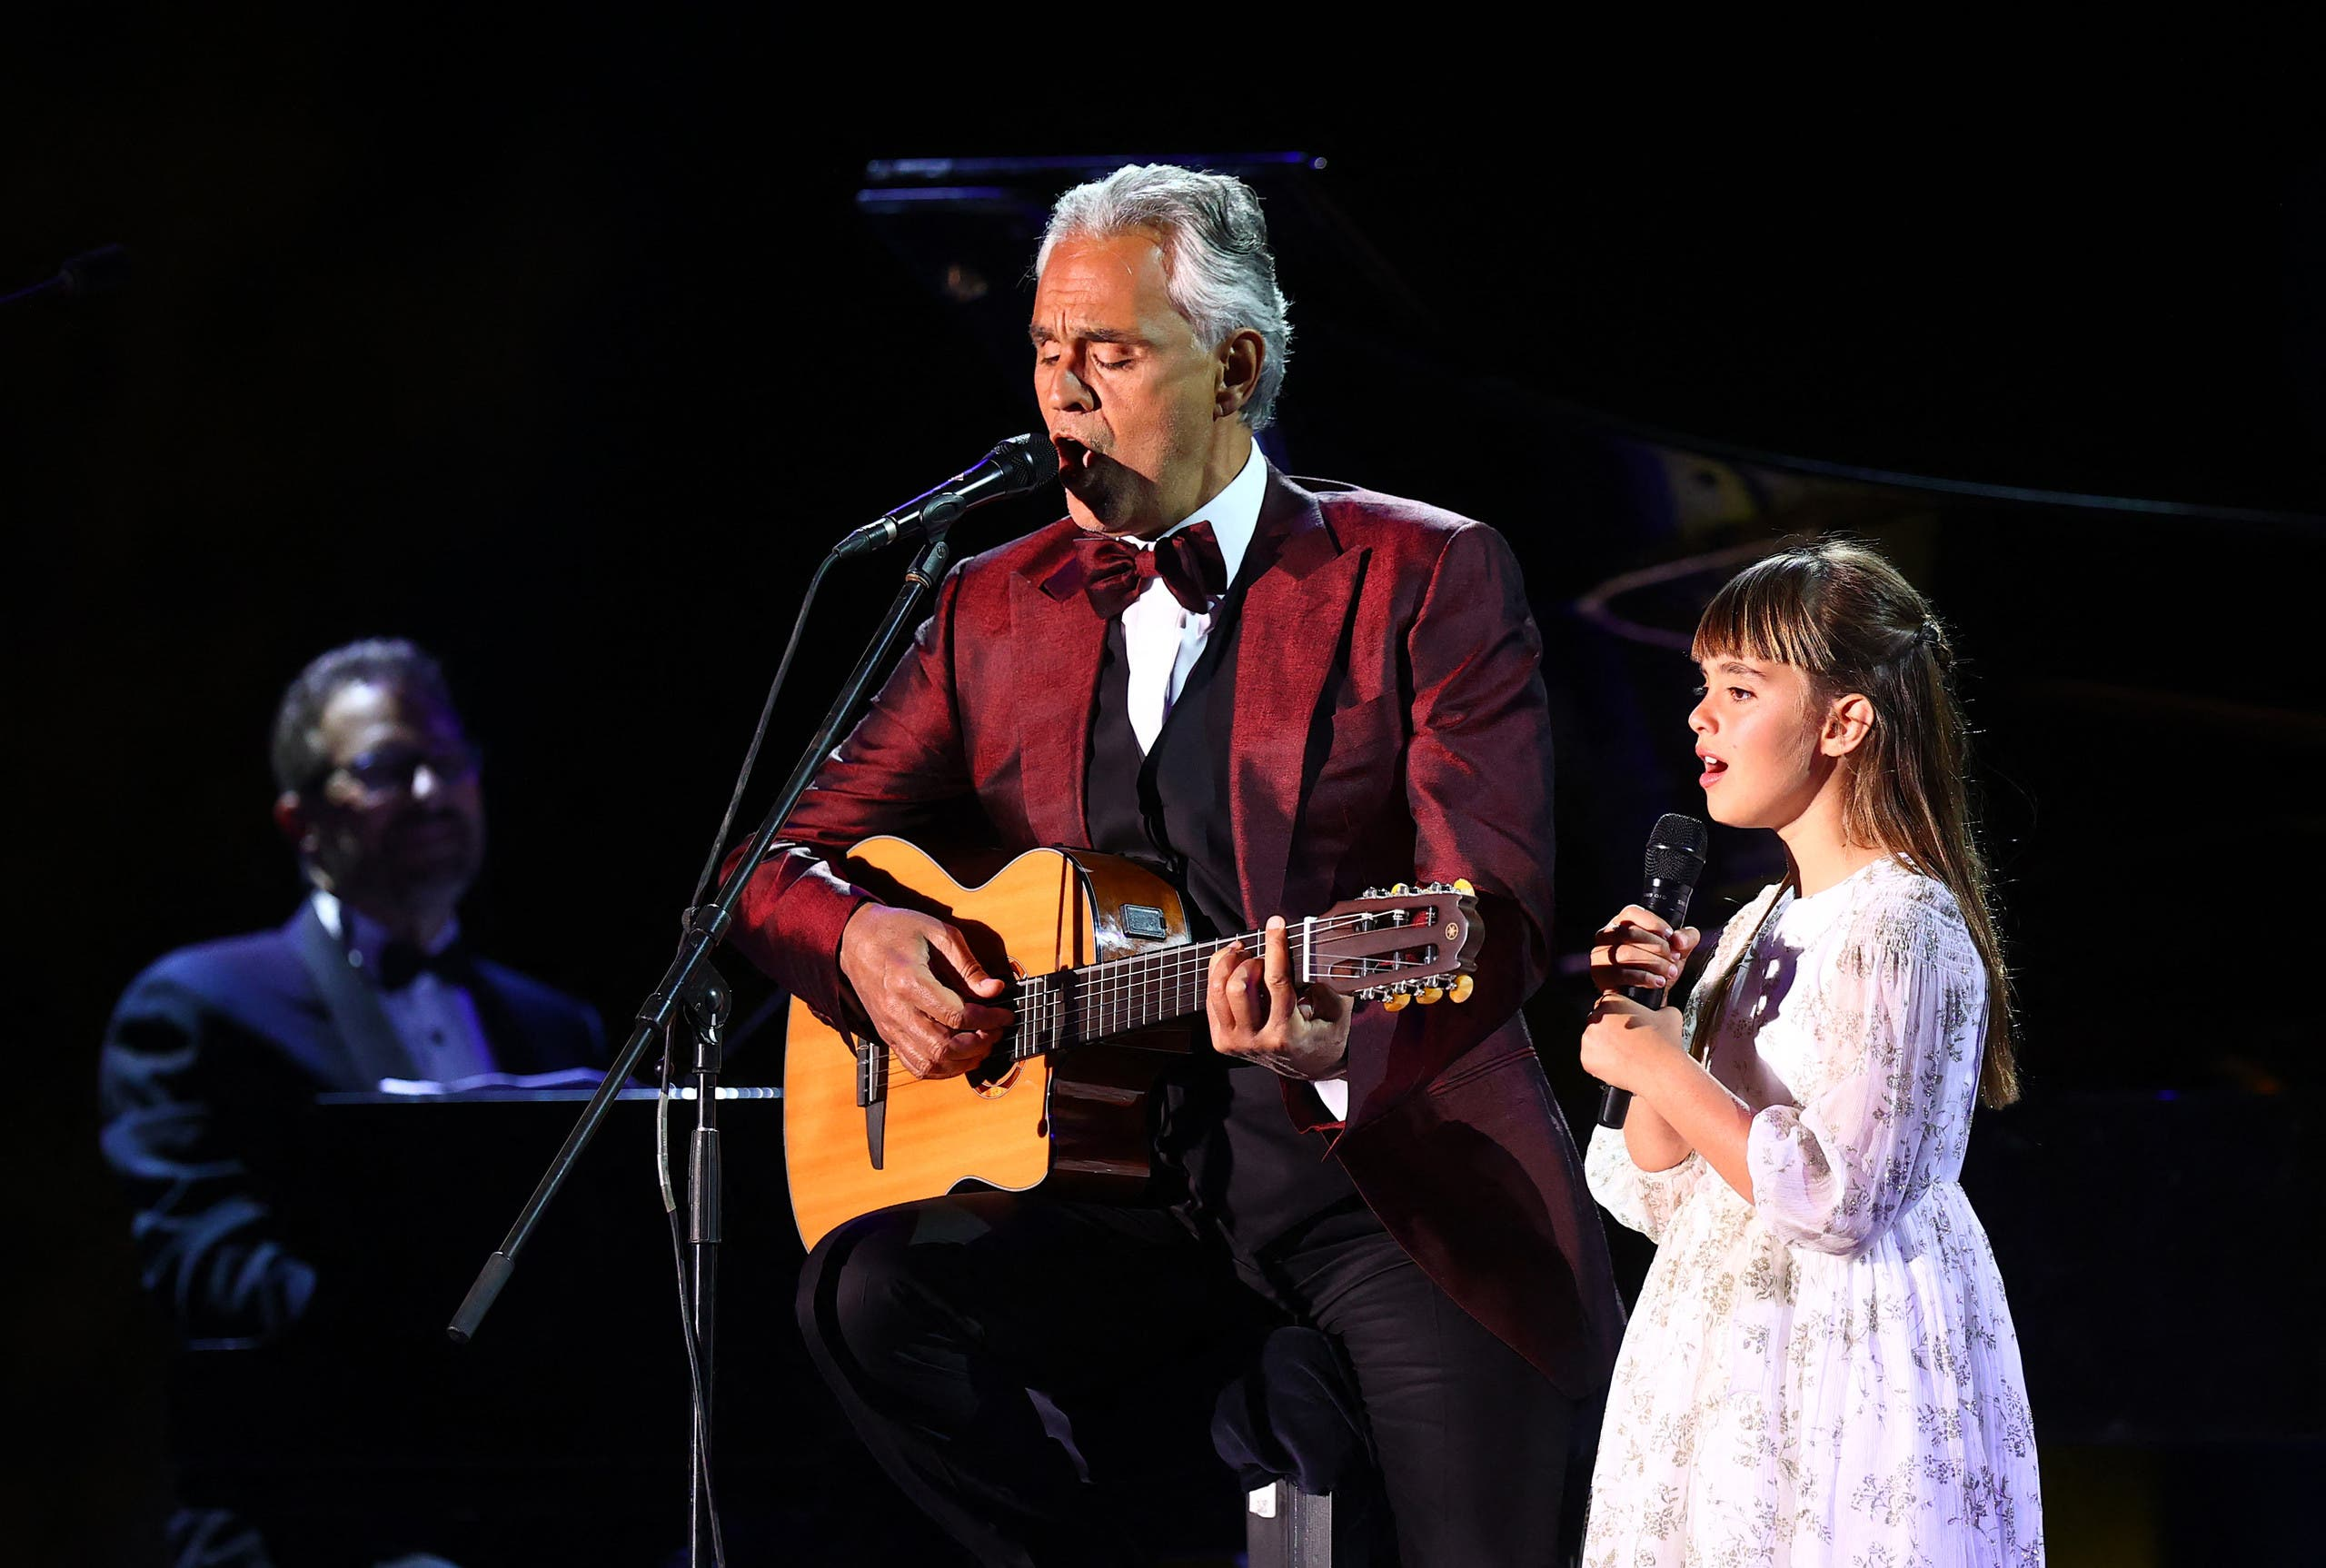 Italian tenor and opera singer Andrea Bocelli and his daughter Virginia singing during a concert at the Hegra World Heritage Site in the northwestern Saudi city of al-Ula on April 8, 2021. (AFP)